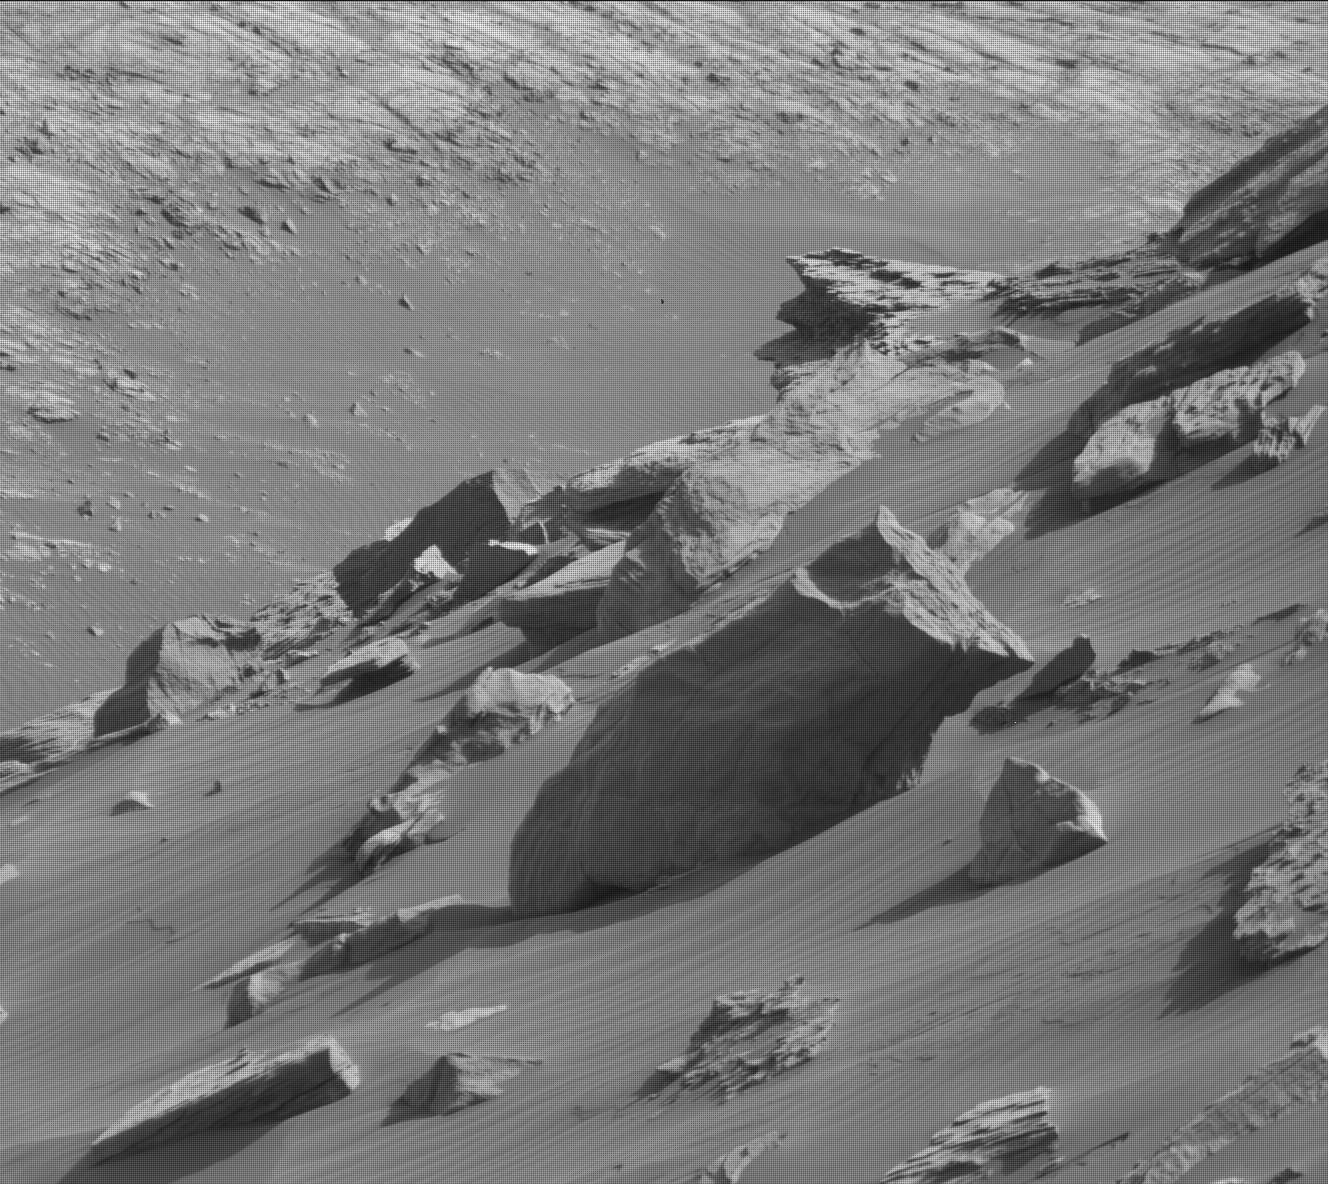 Nasa's Mars rover Curiosity acquired this image using its Mast Camera (Mastcam) on Sol 2671